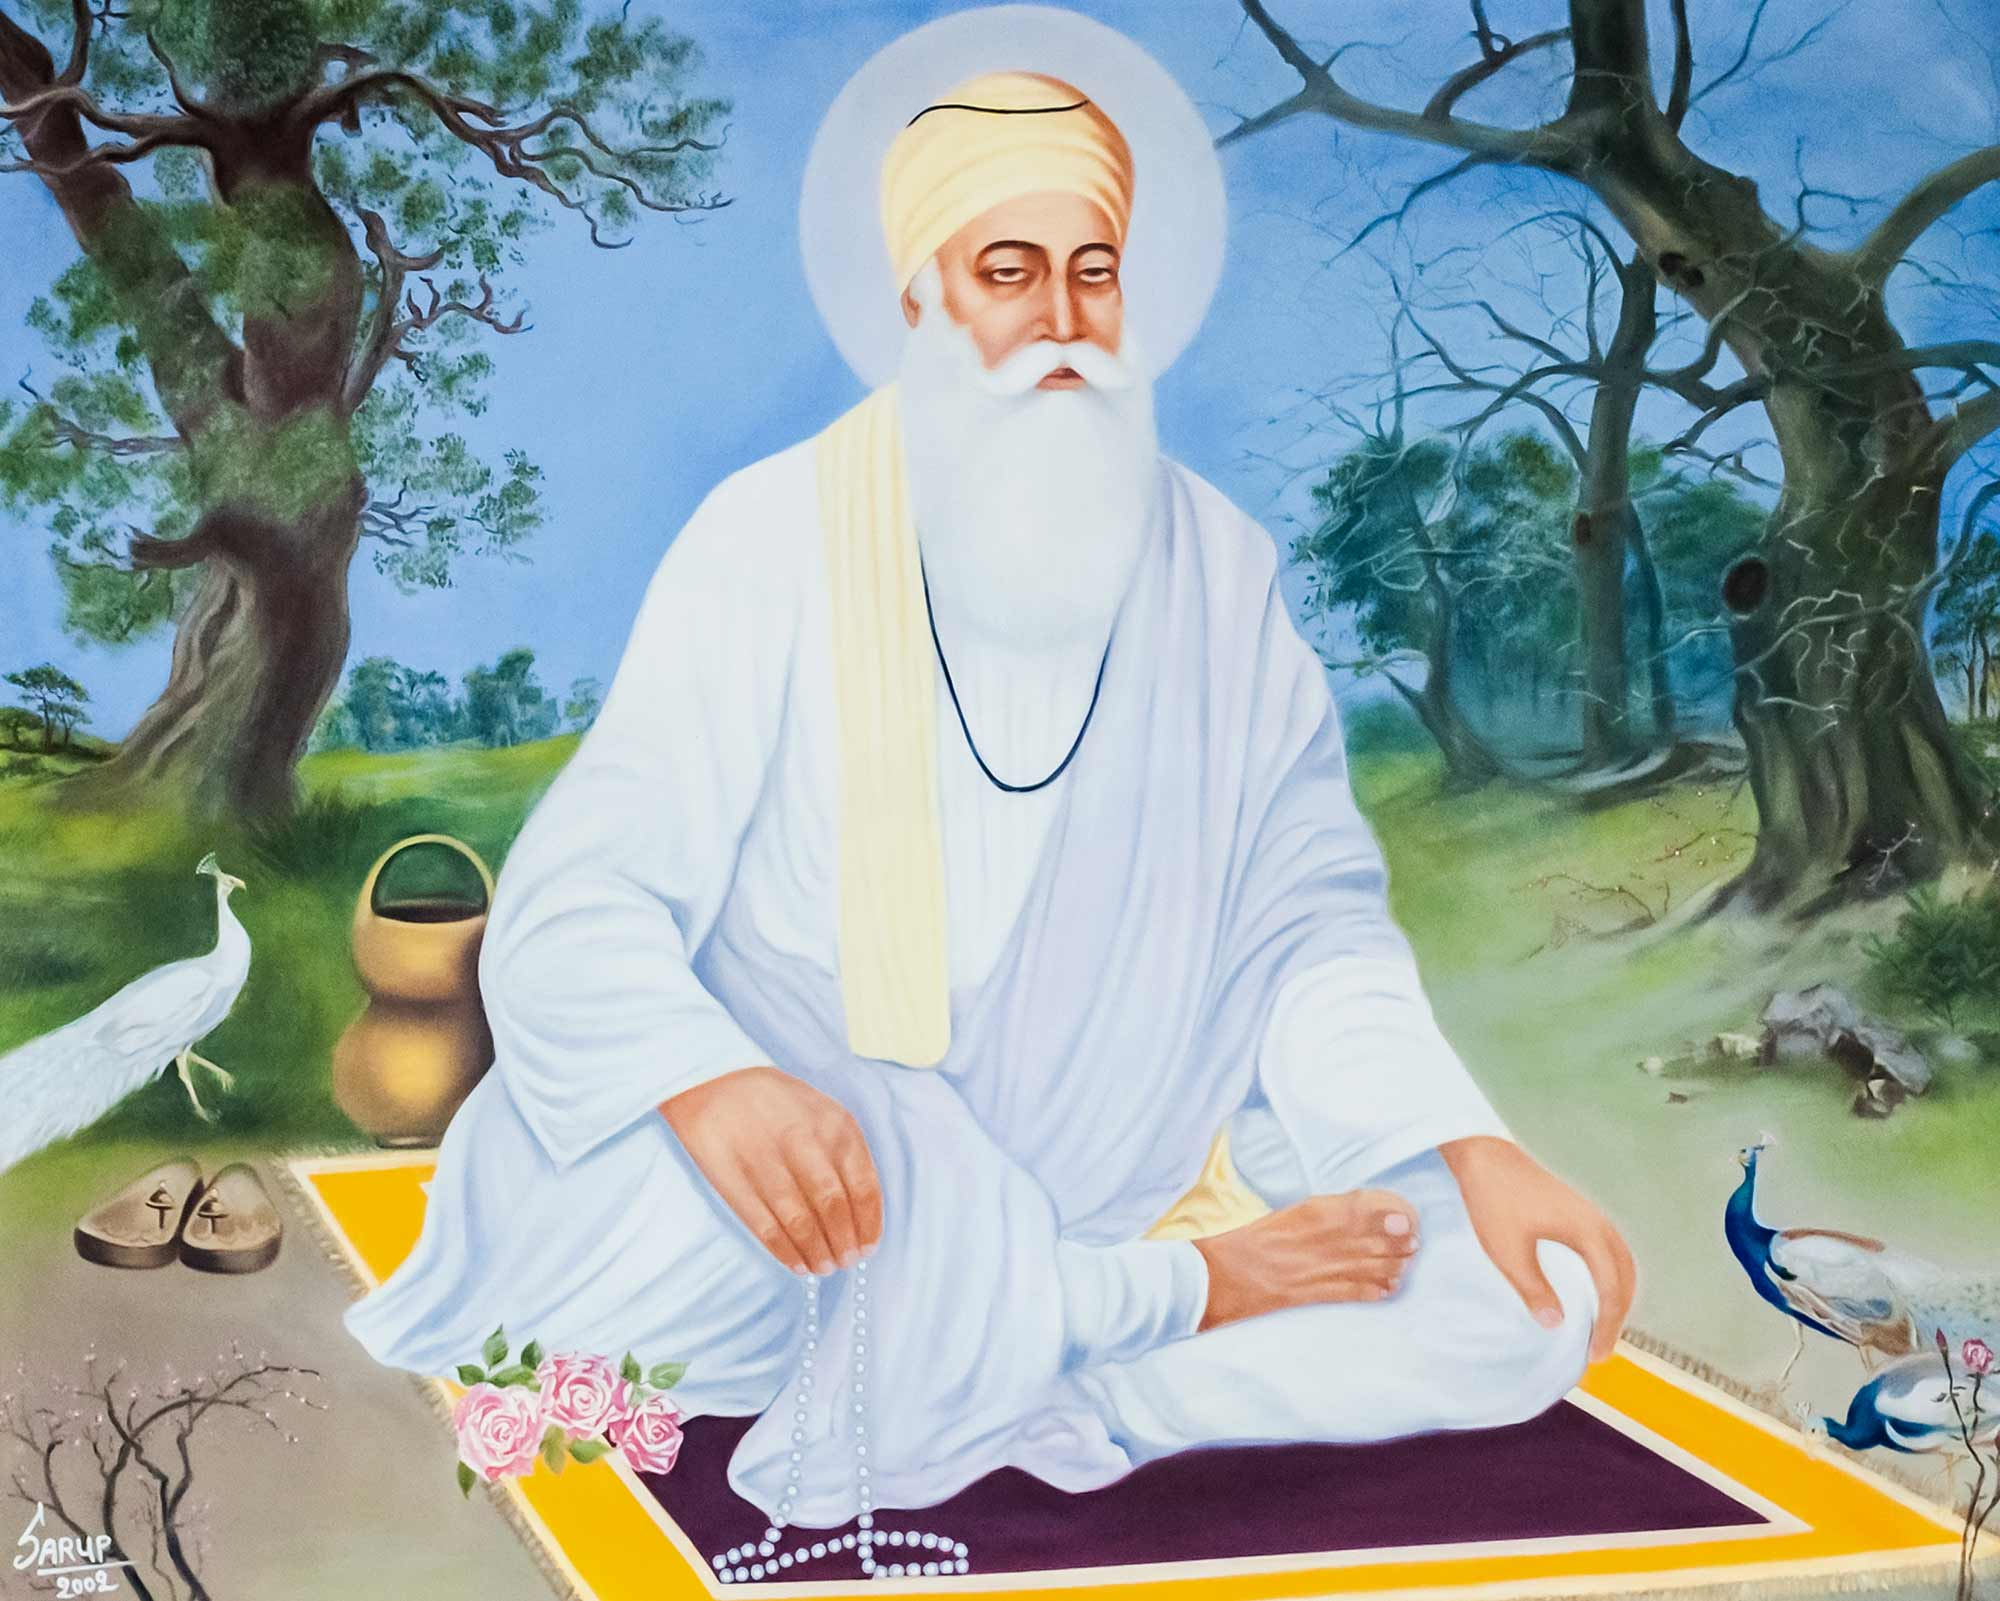 Portrait of Guru Nanak Dev Ji, founder of Sikhism -